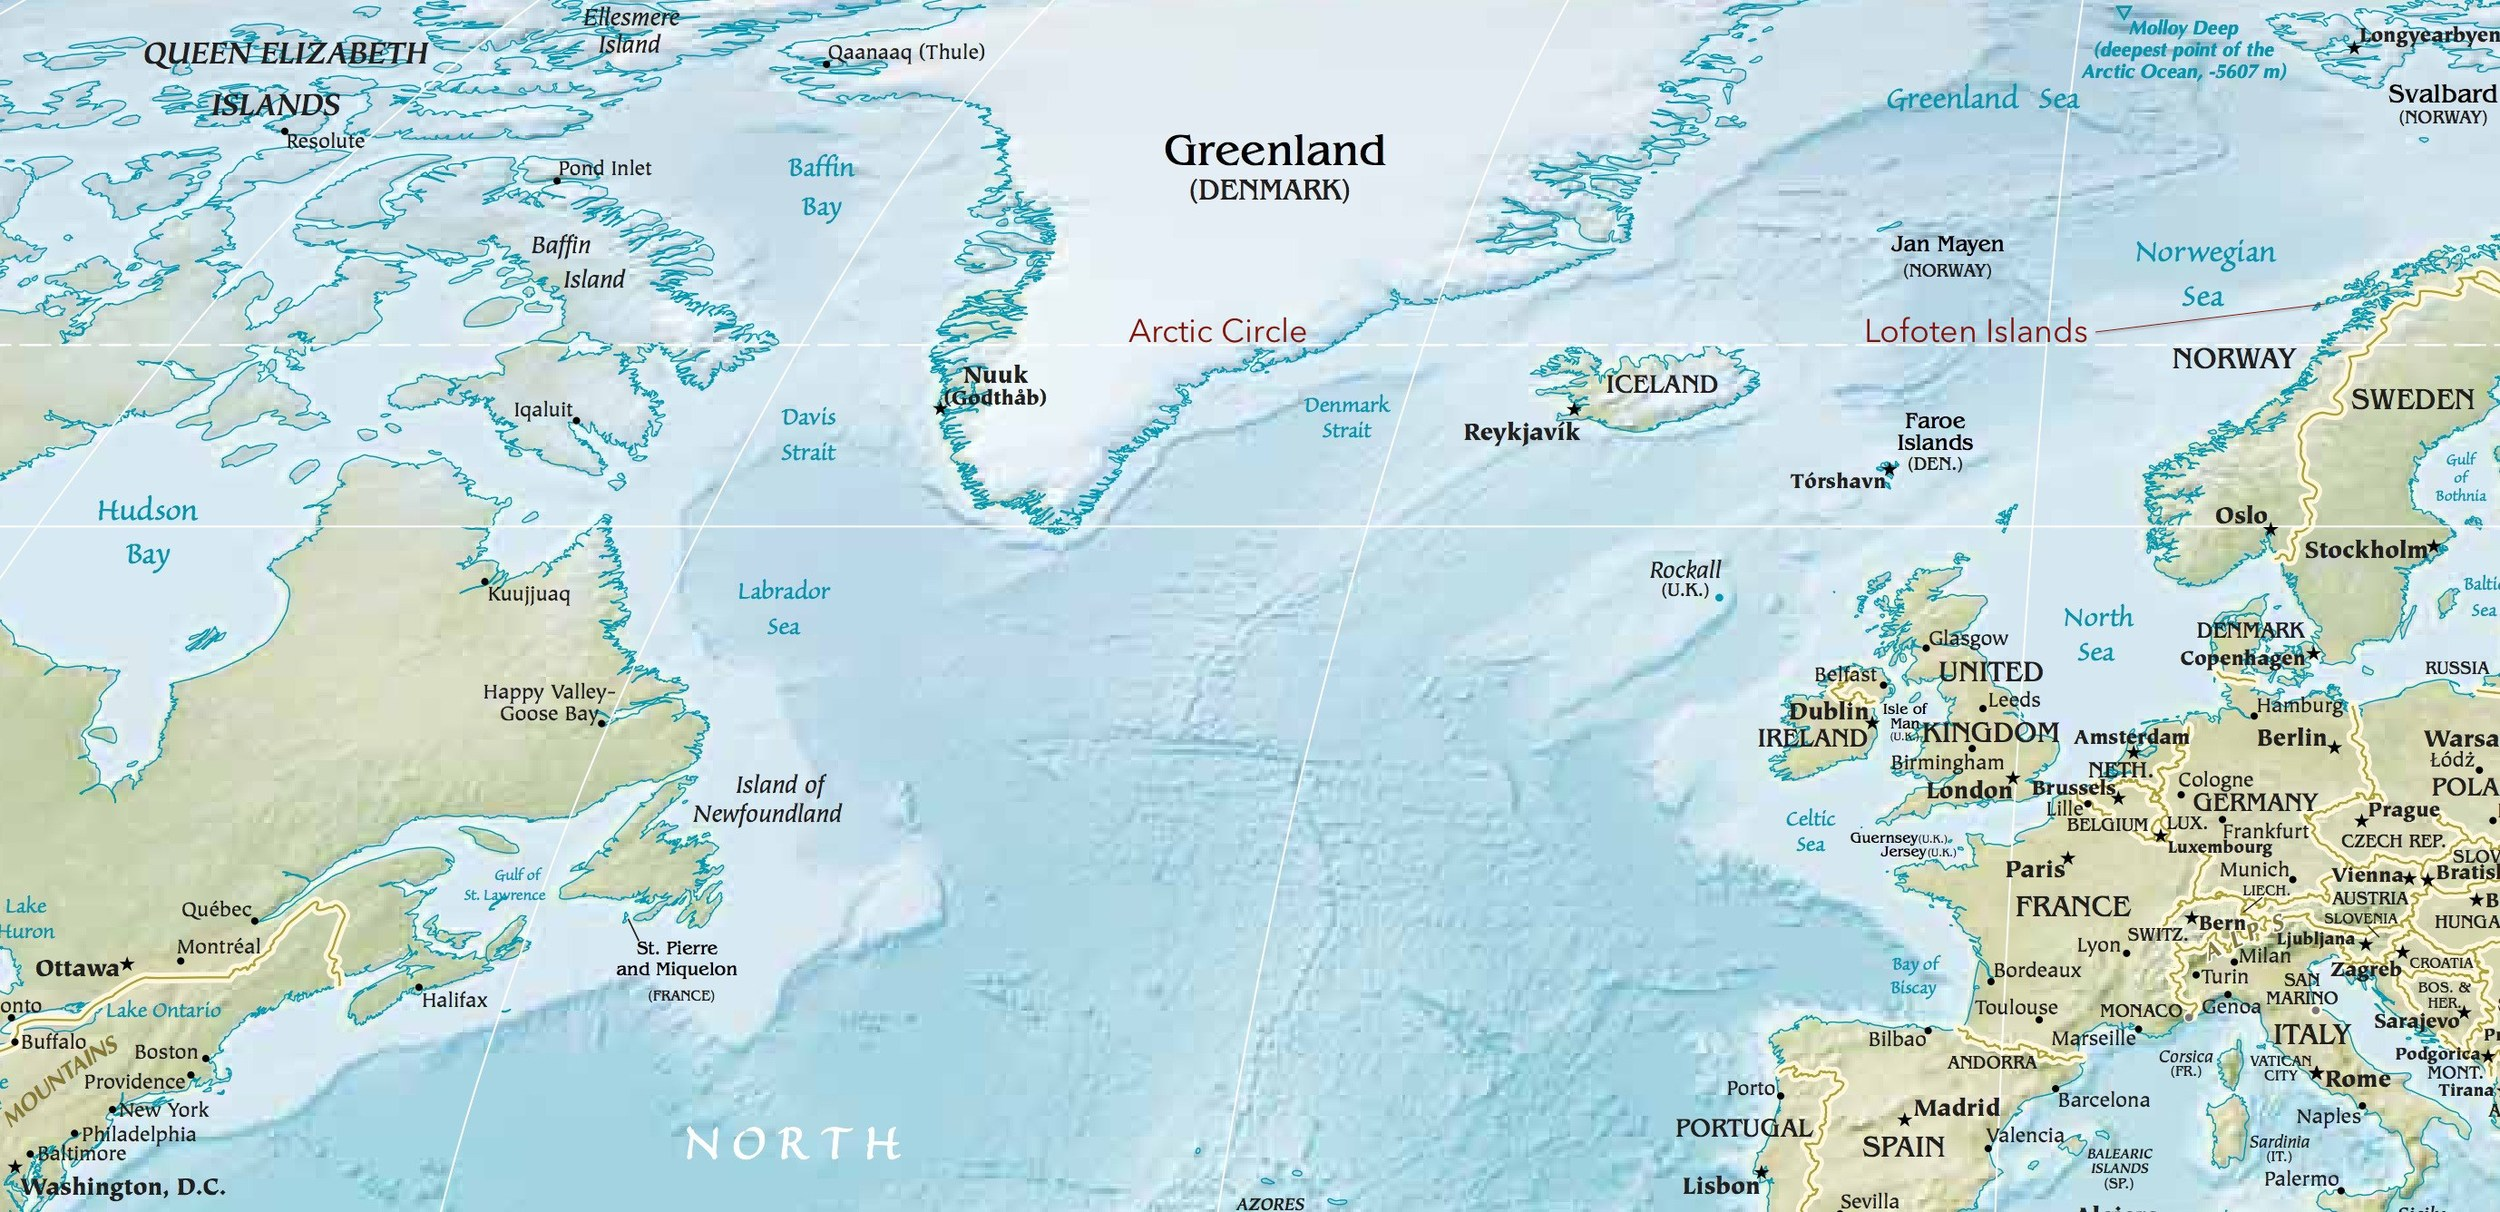 Arctic map view from CIA World maps online; Lofoten Islands and Arctic Circle markings added